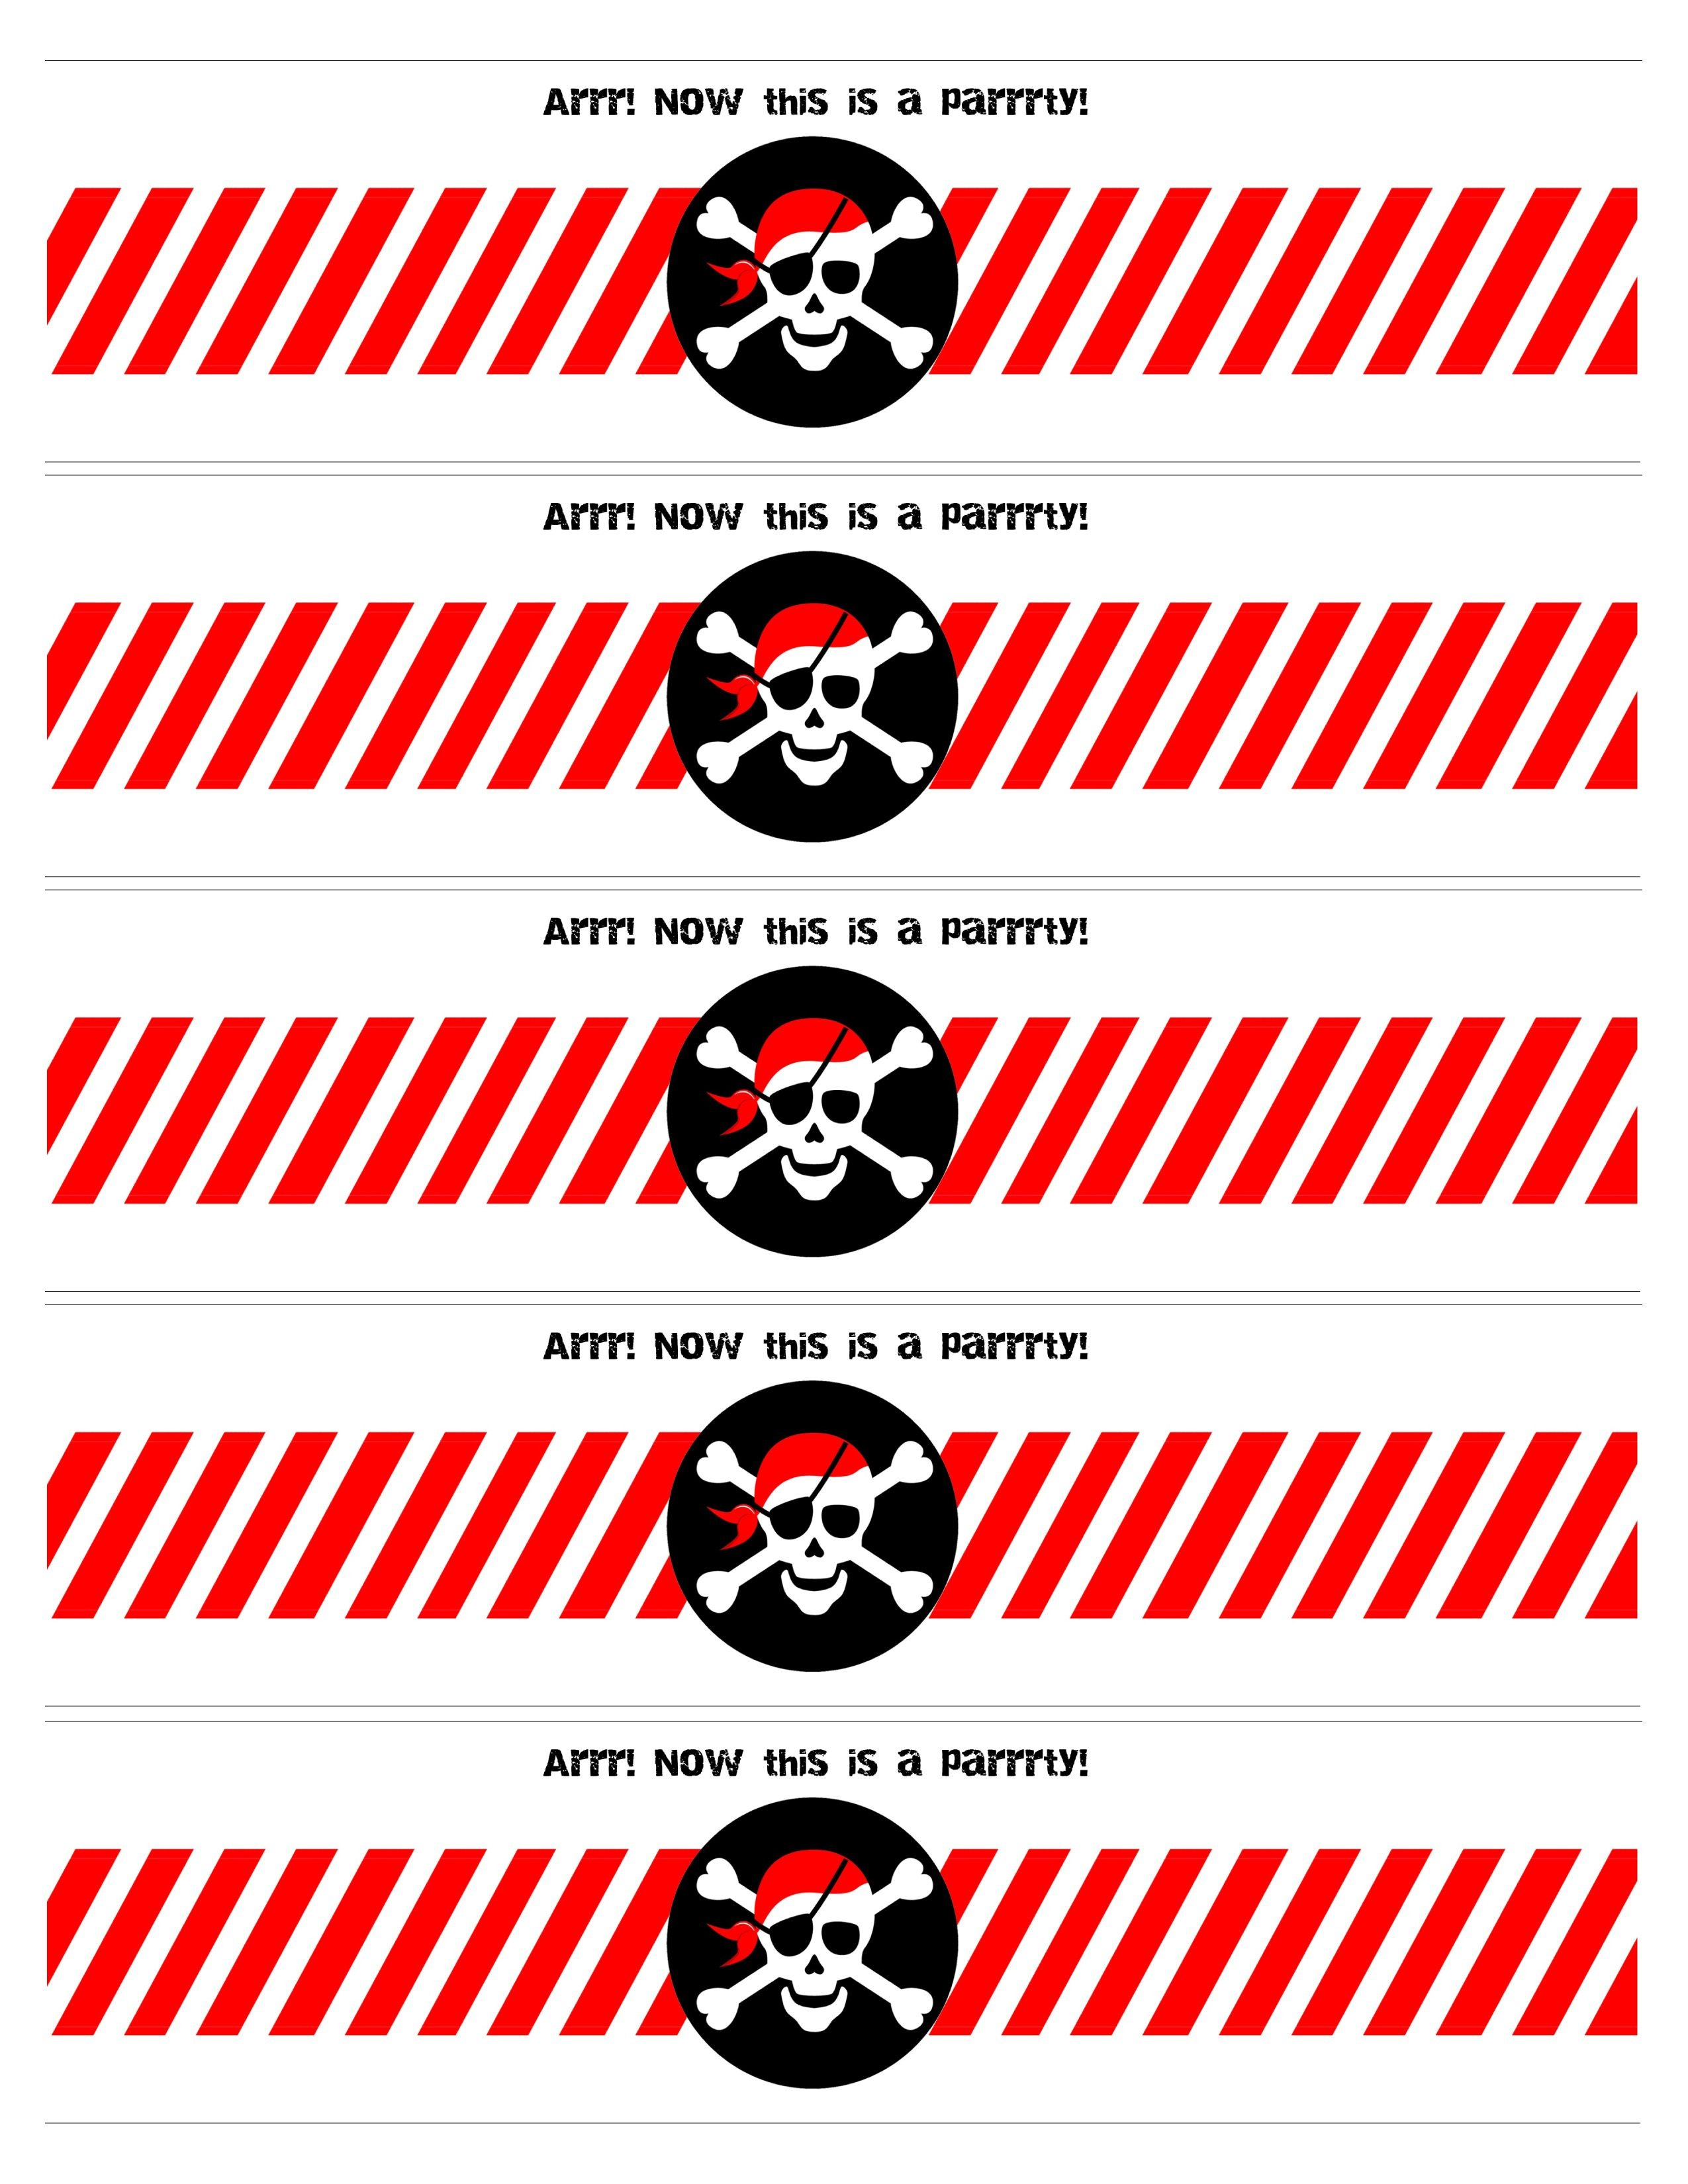 Pirate Birthday Party With Free Printables   Free Label Printables - Free Pirate Birthday Party Printables